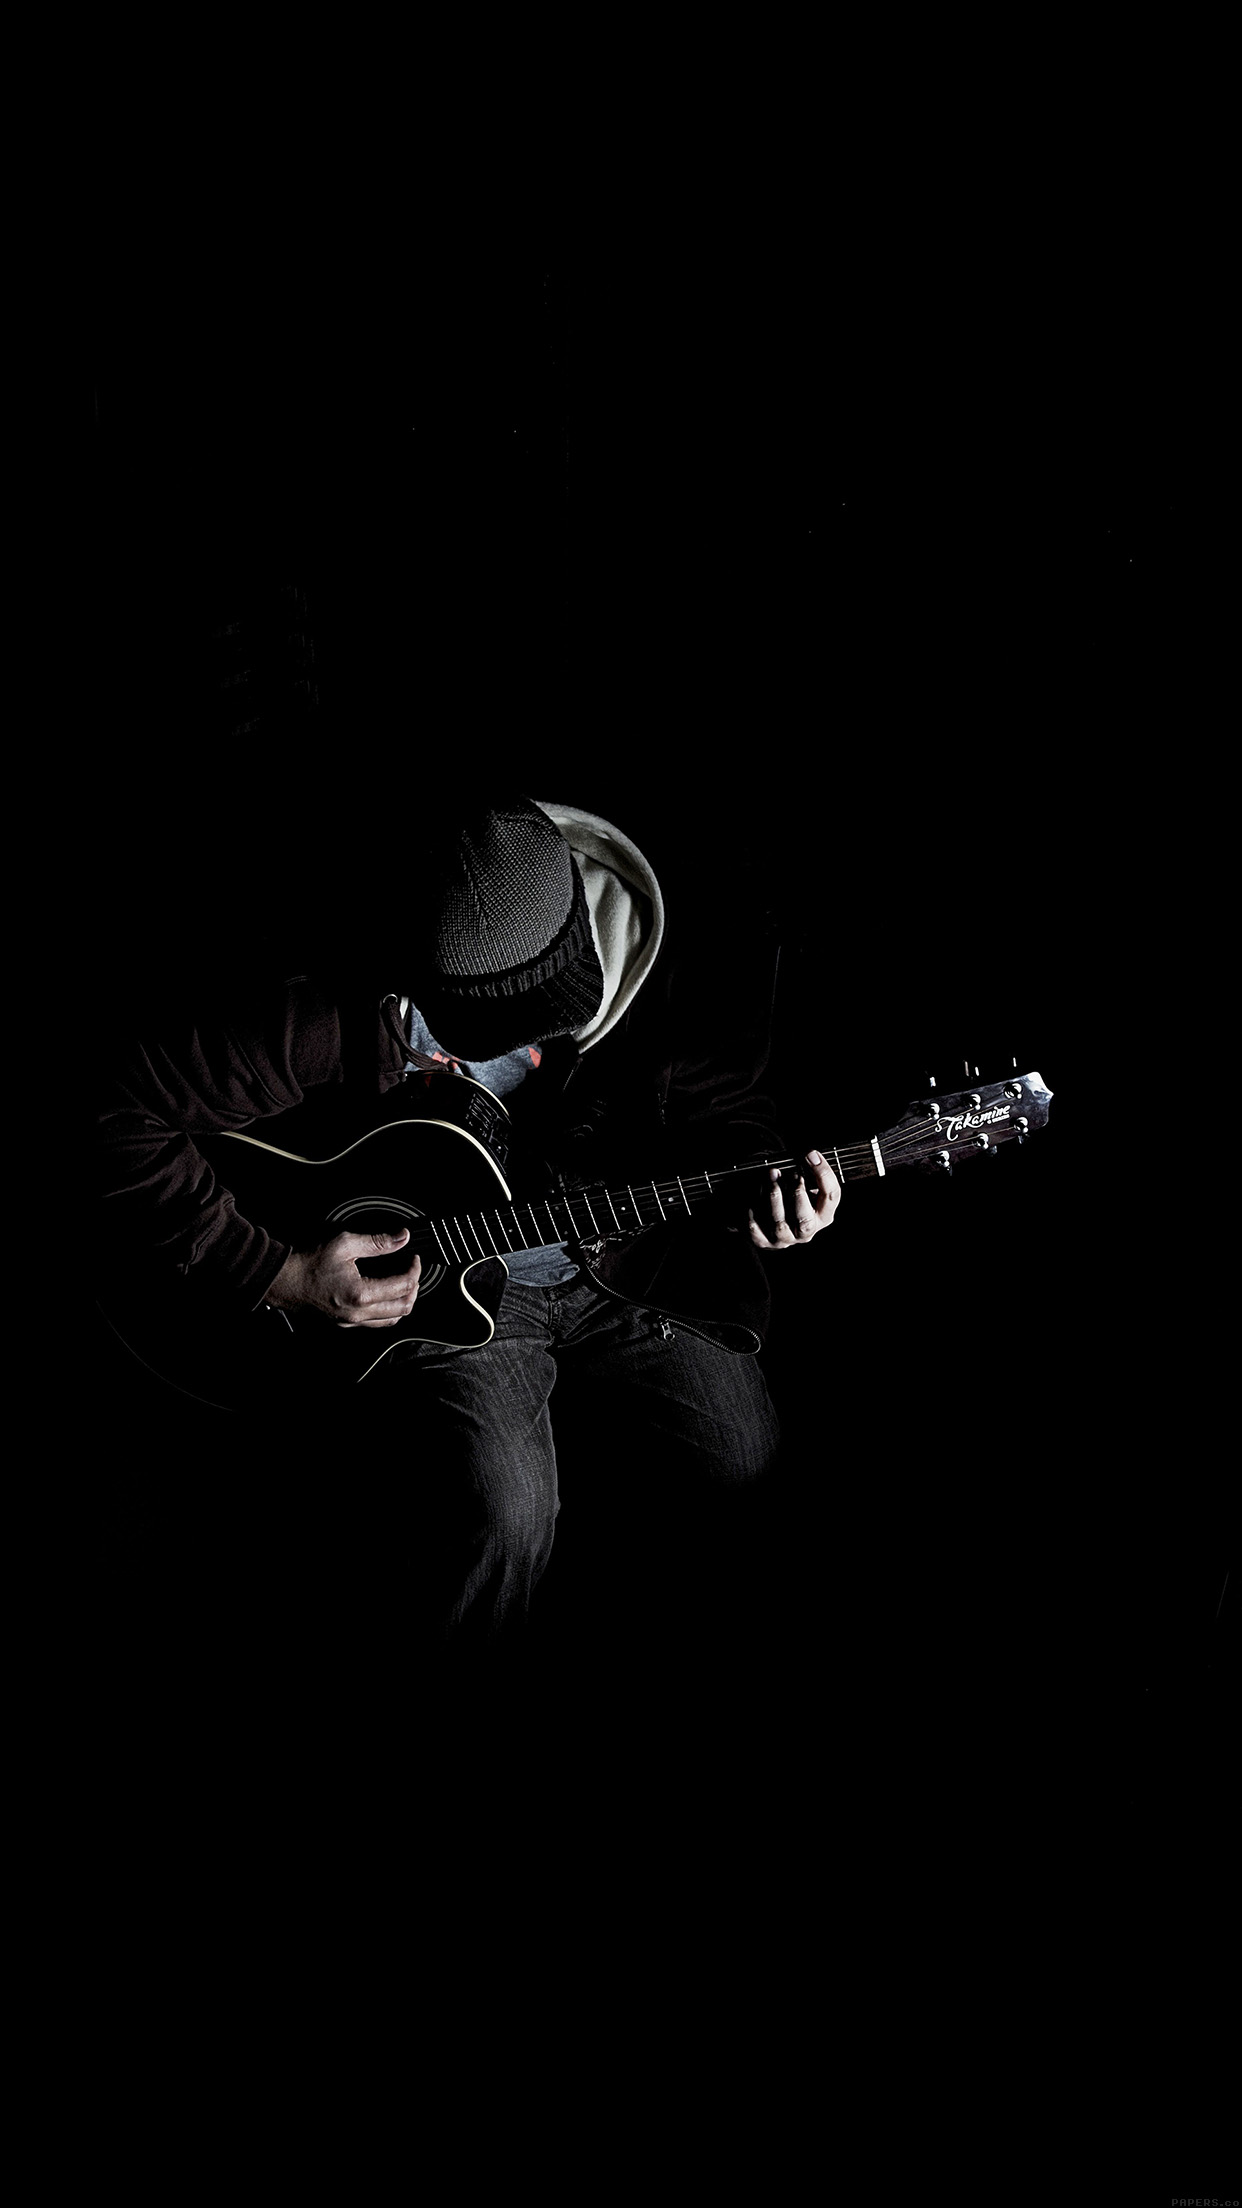 out the dark guitar player music android wallpaper - android hd